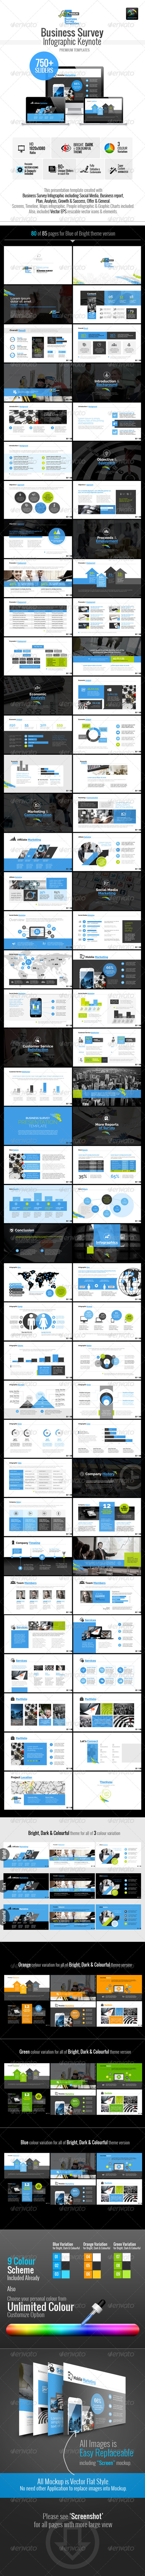 GraphicRiver Business Survey Infographic Keynote 7018350